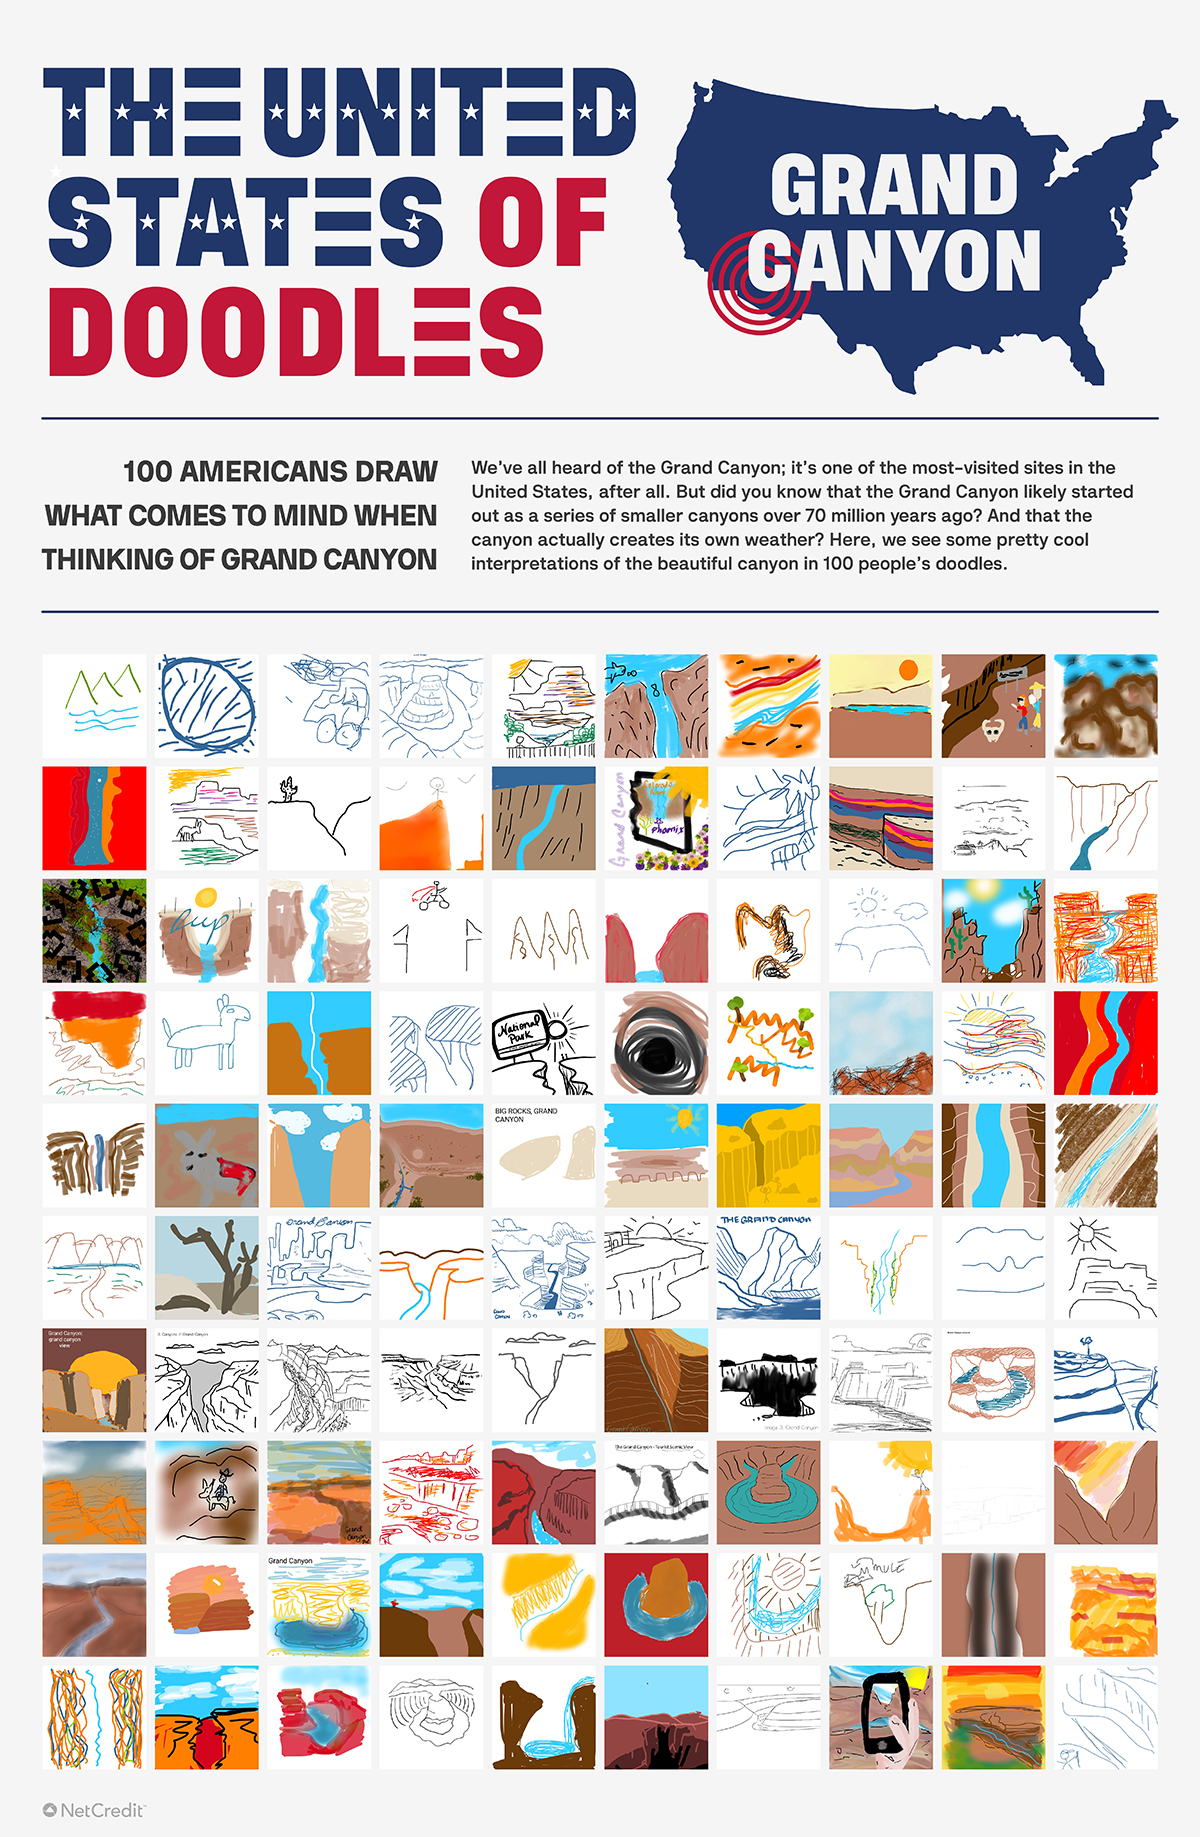 United States of Doodles Grand Canyon